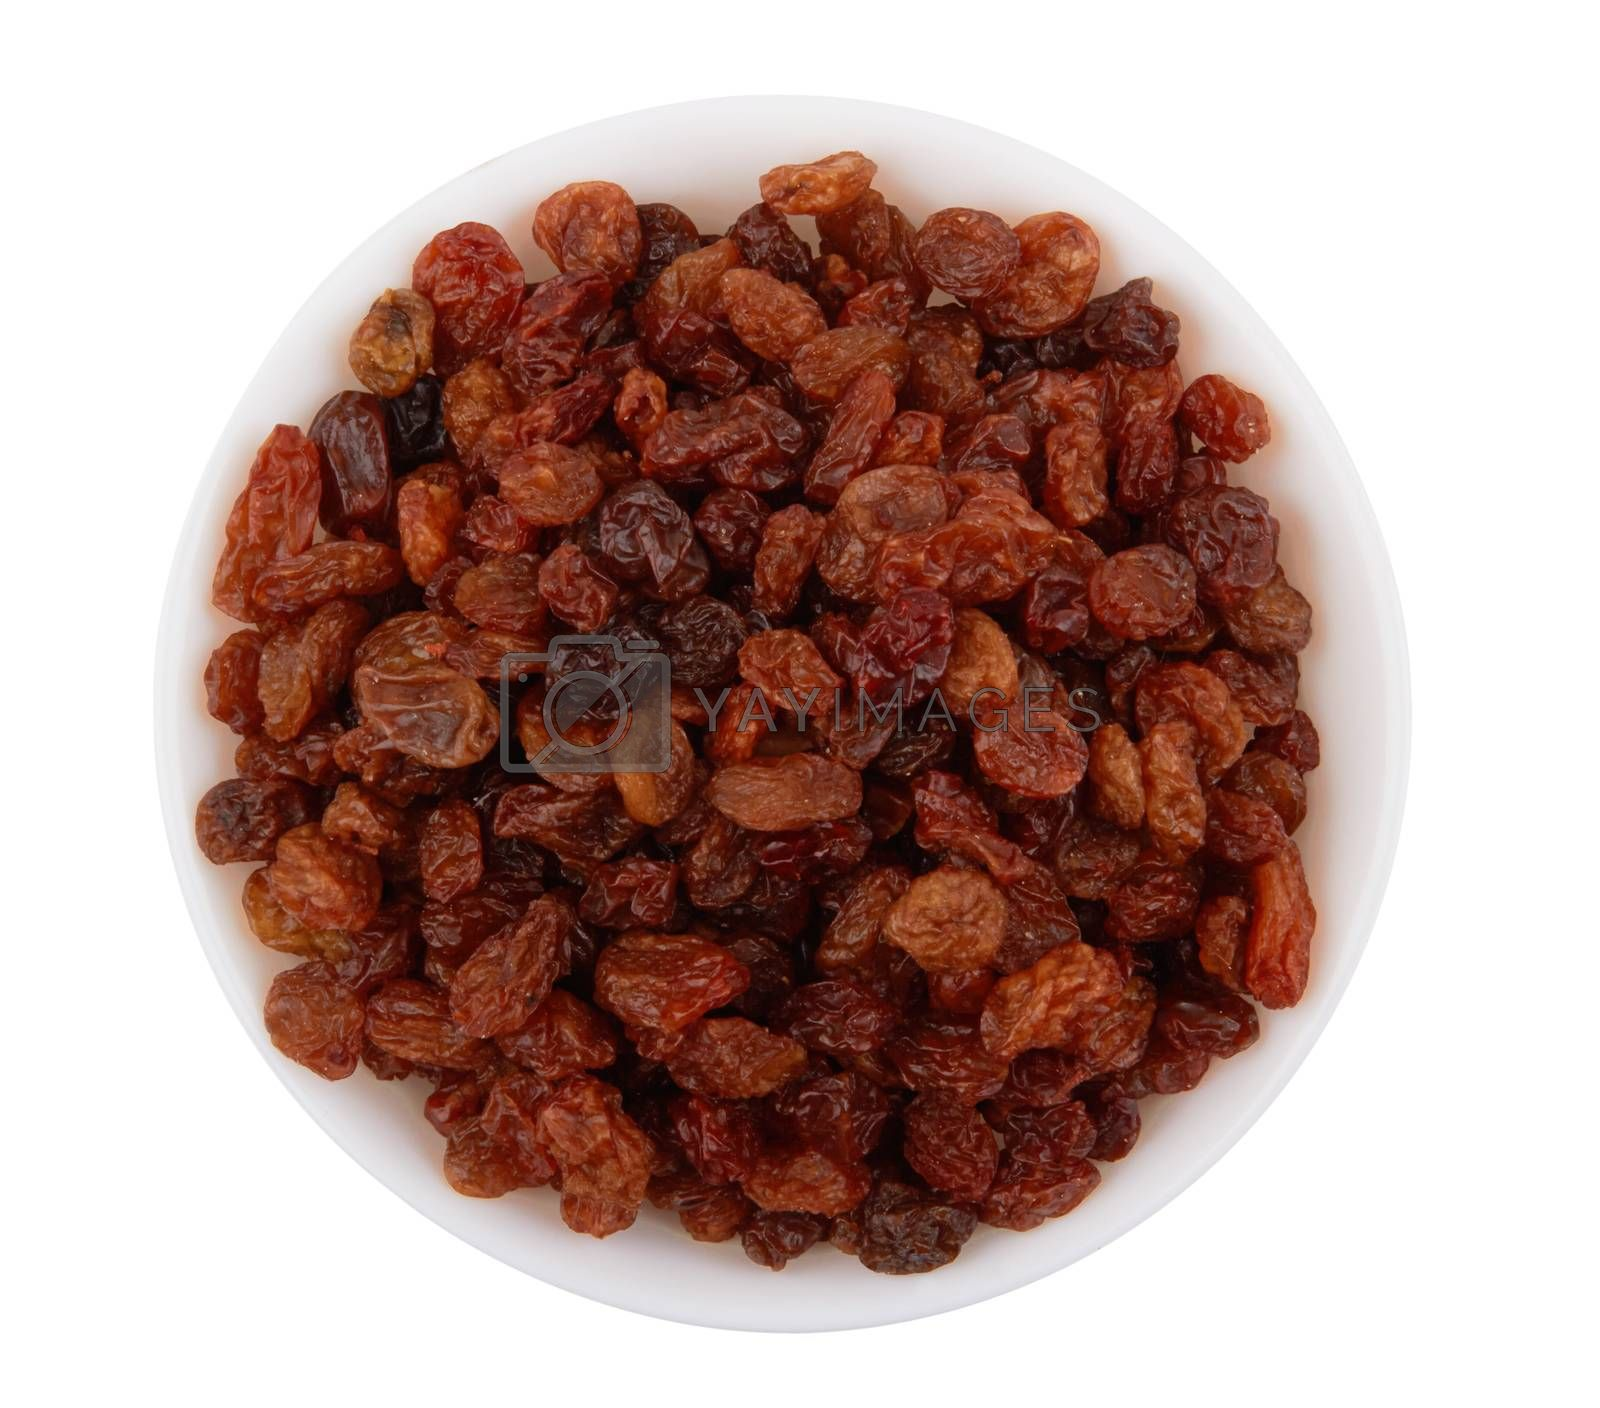 Raisins in bowl isolated on a white background